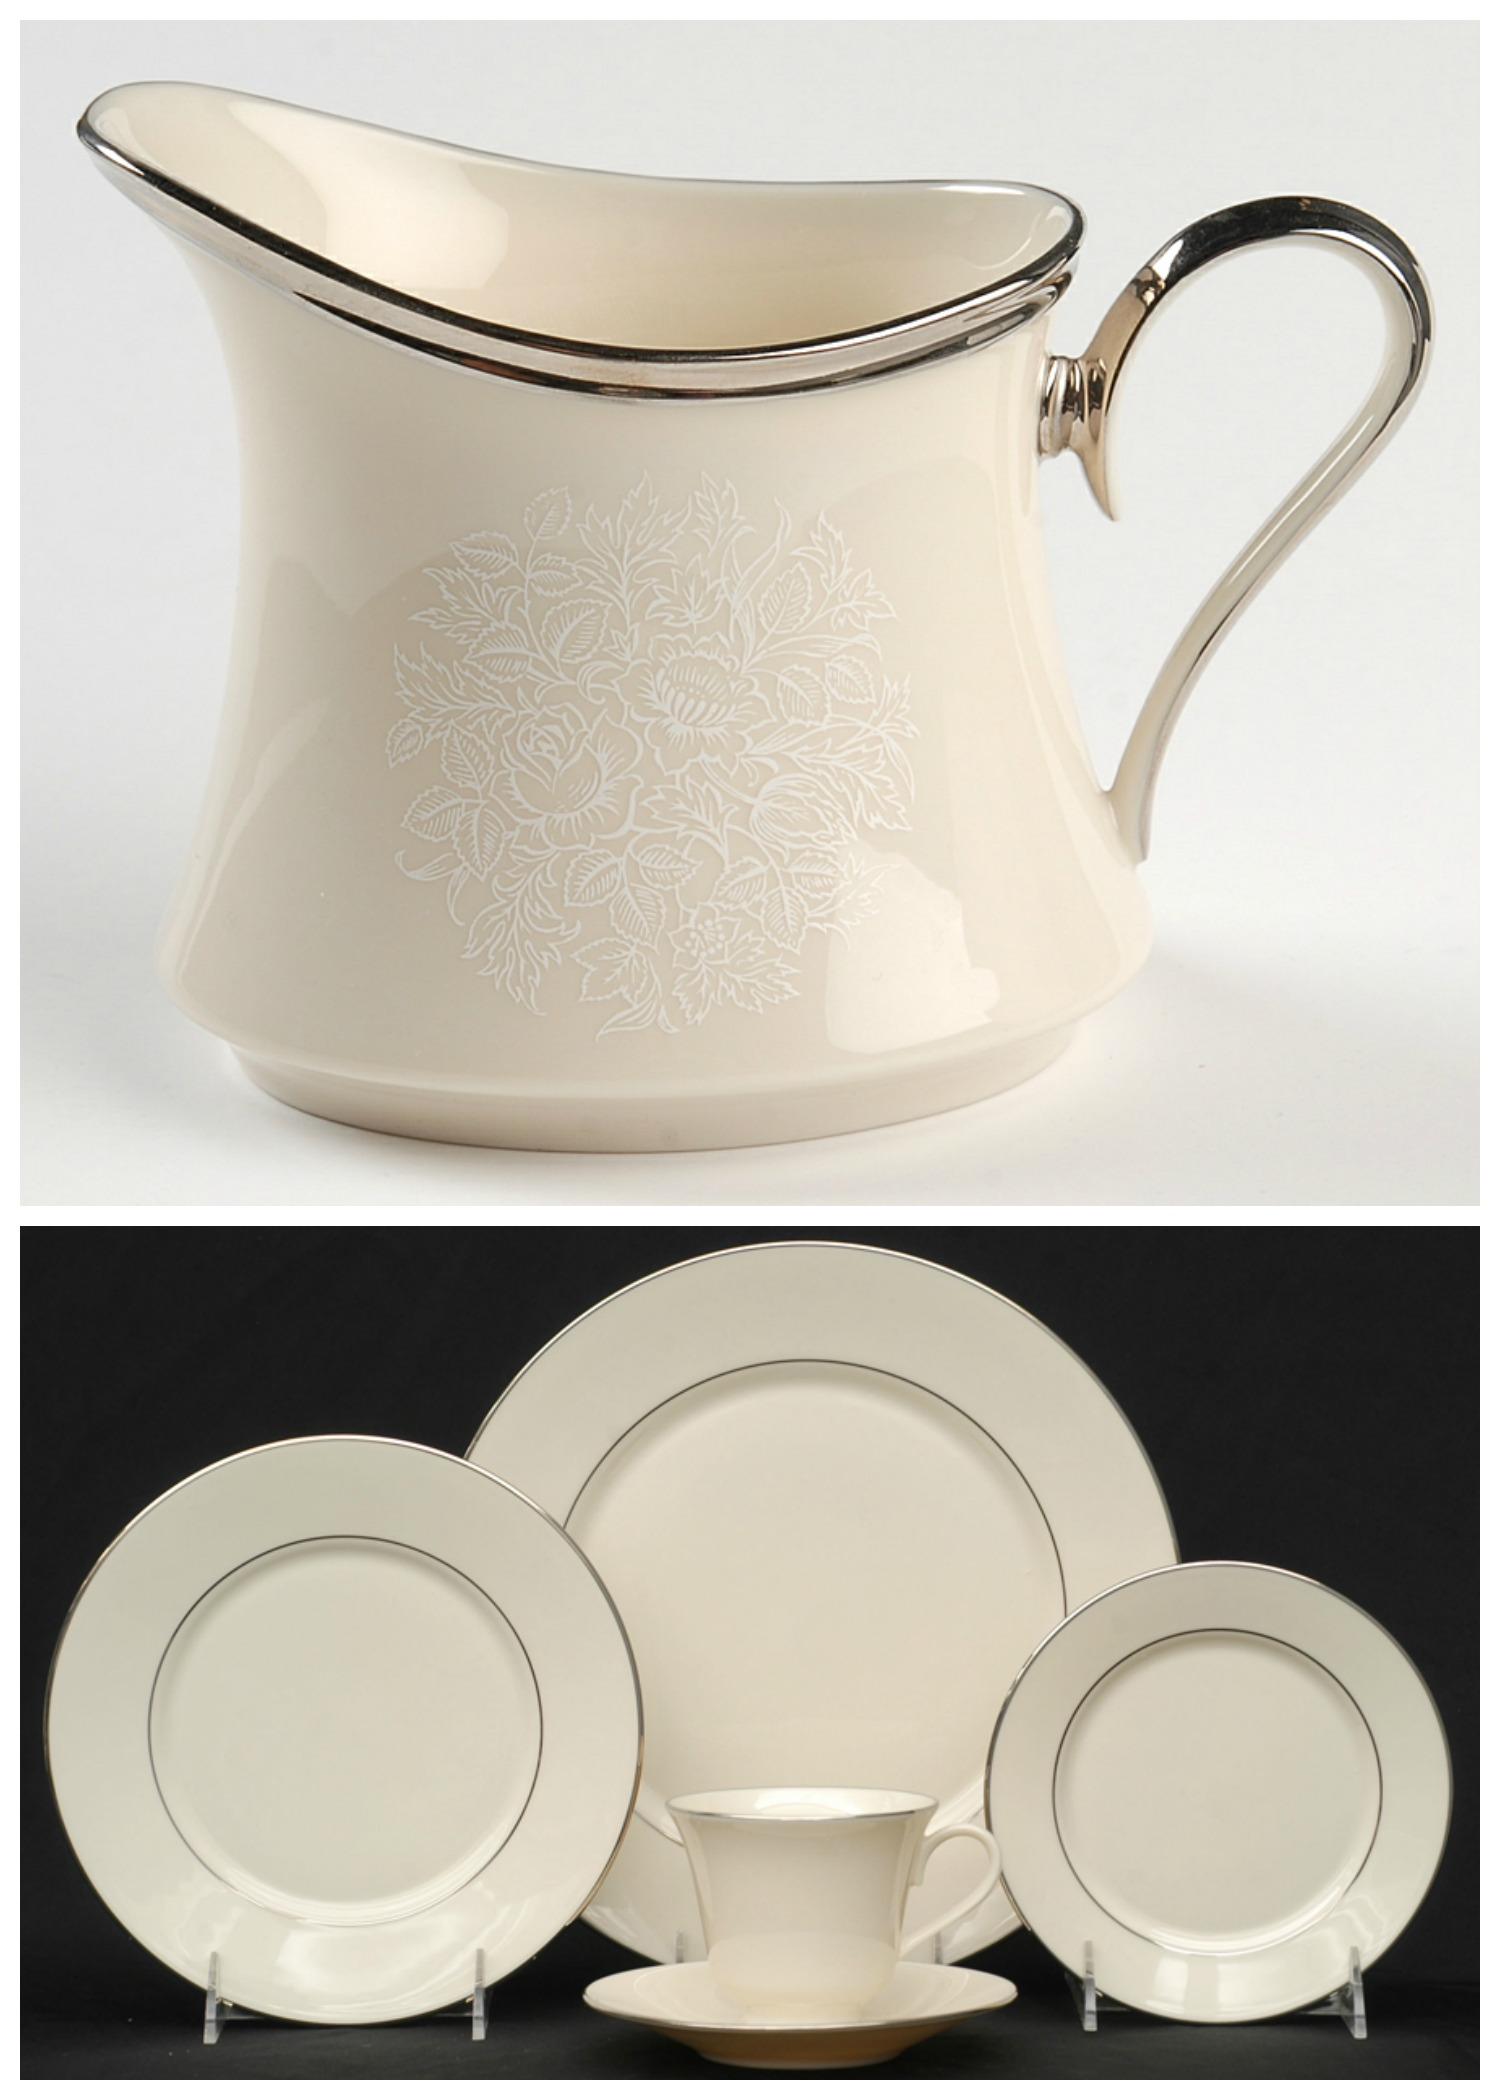 Lenox Maywood Moonspun china